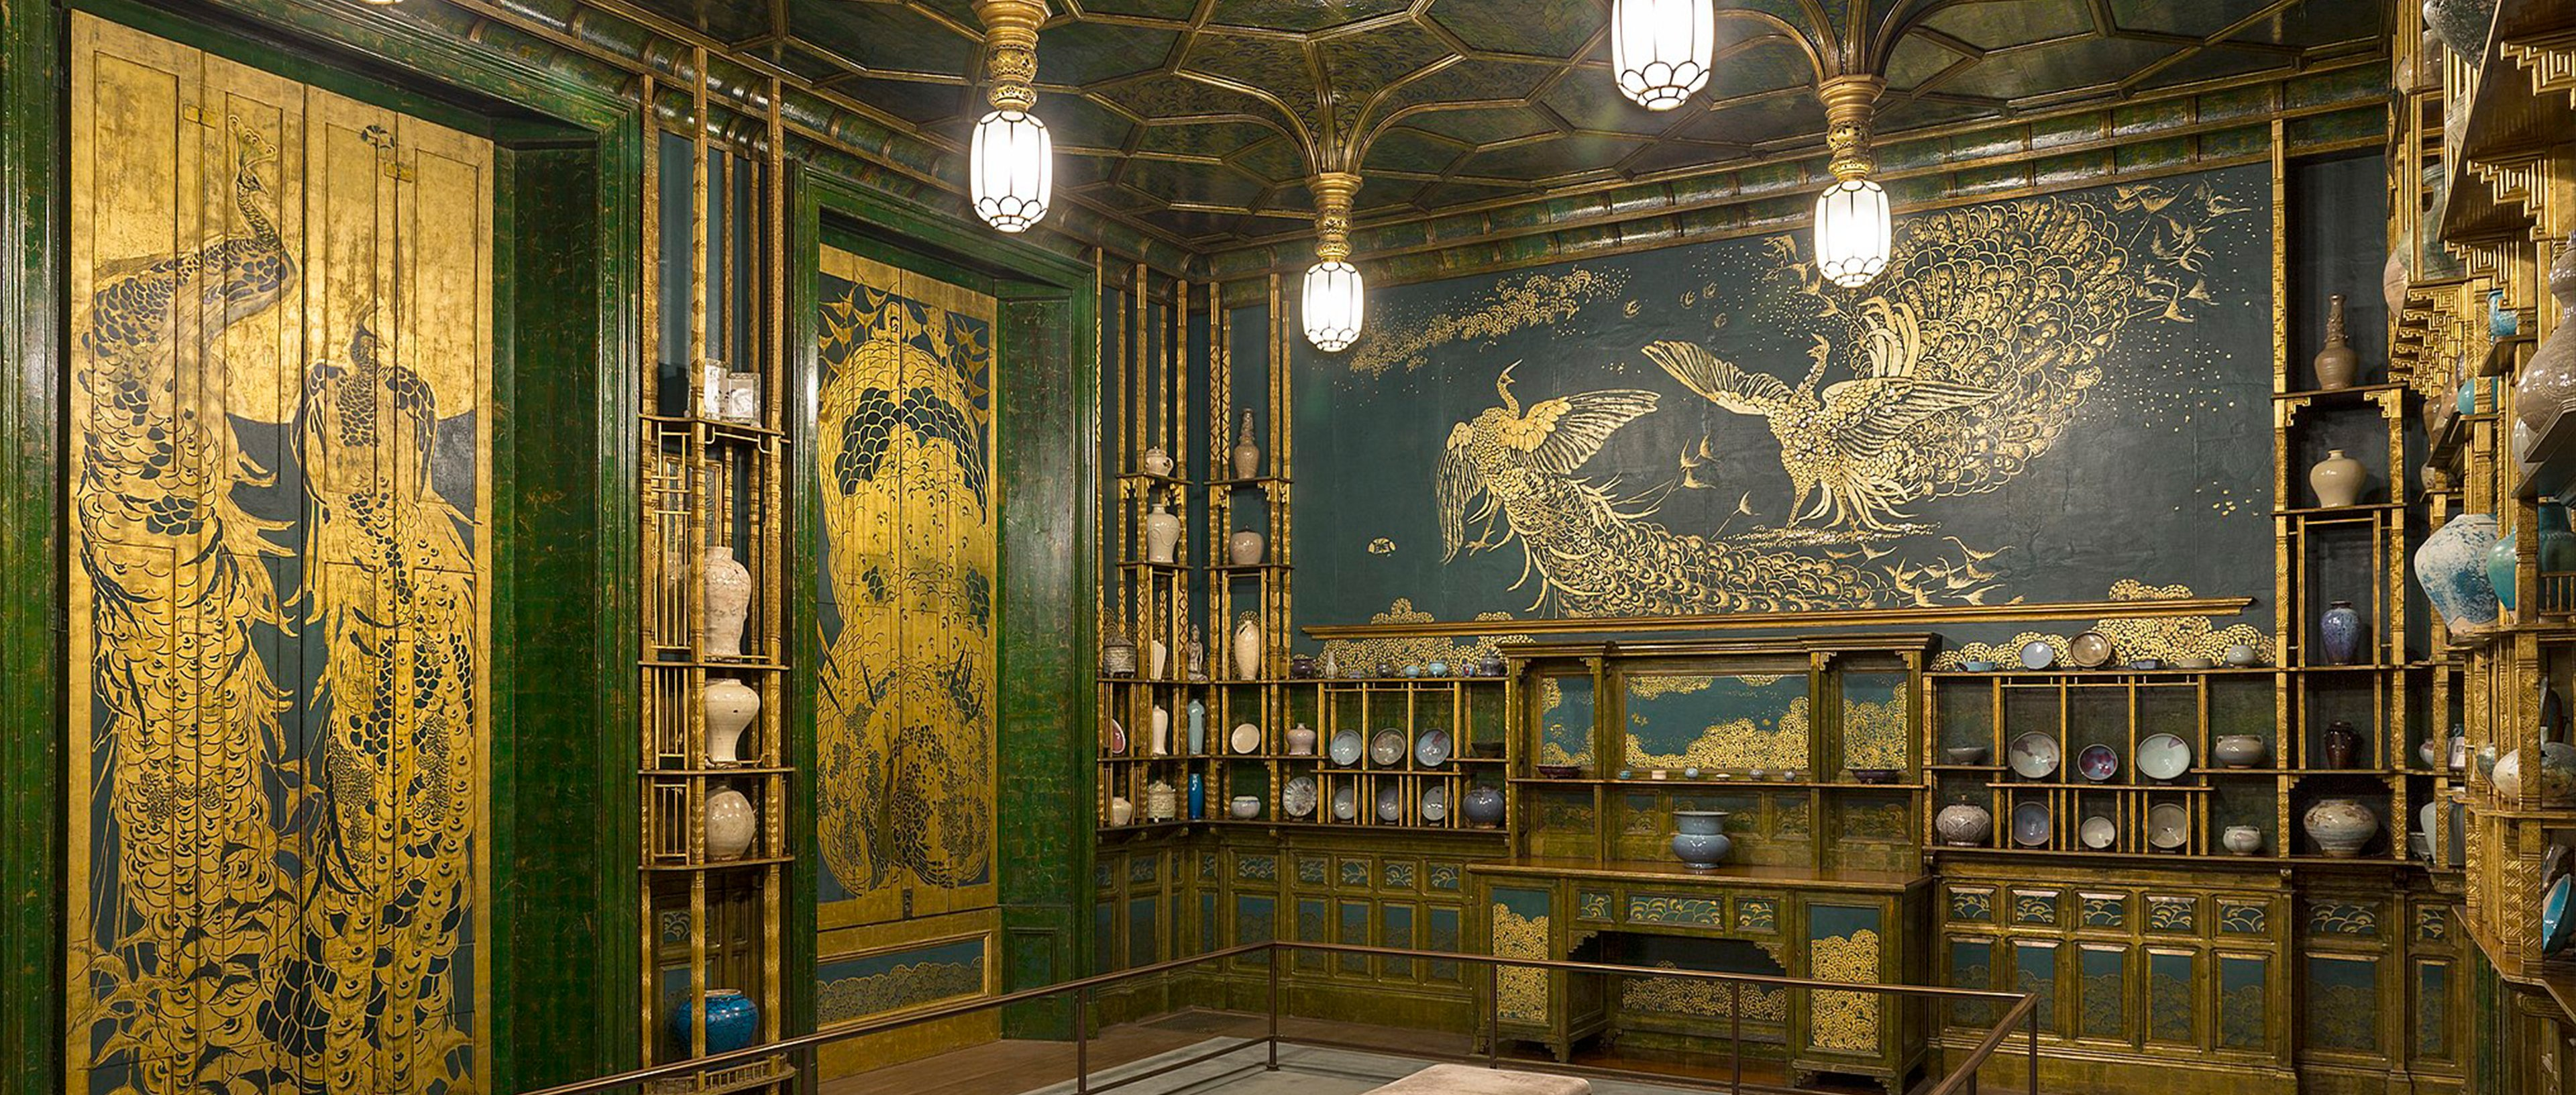 Barry Richards' inspiration - The Peacock Room by James Whistler